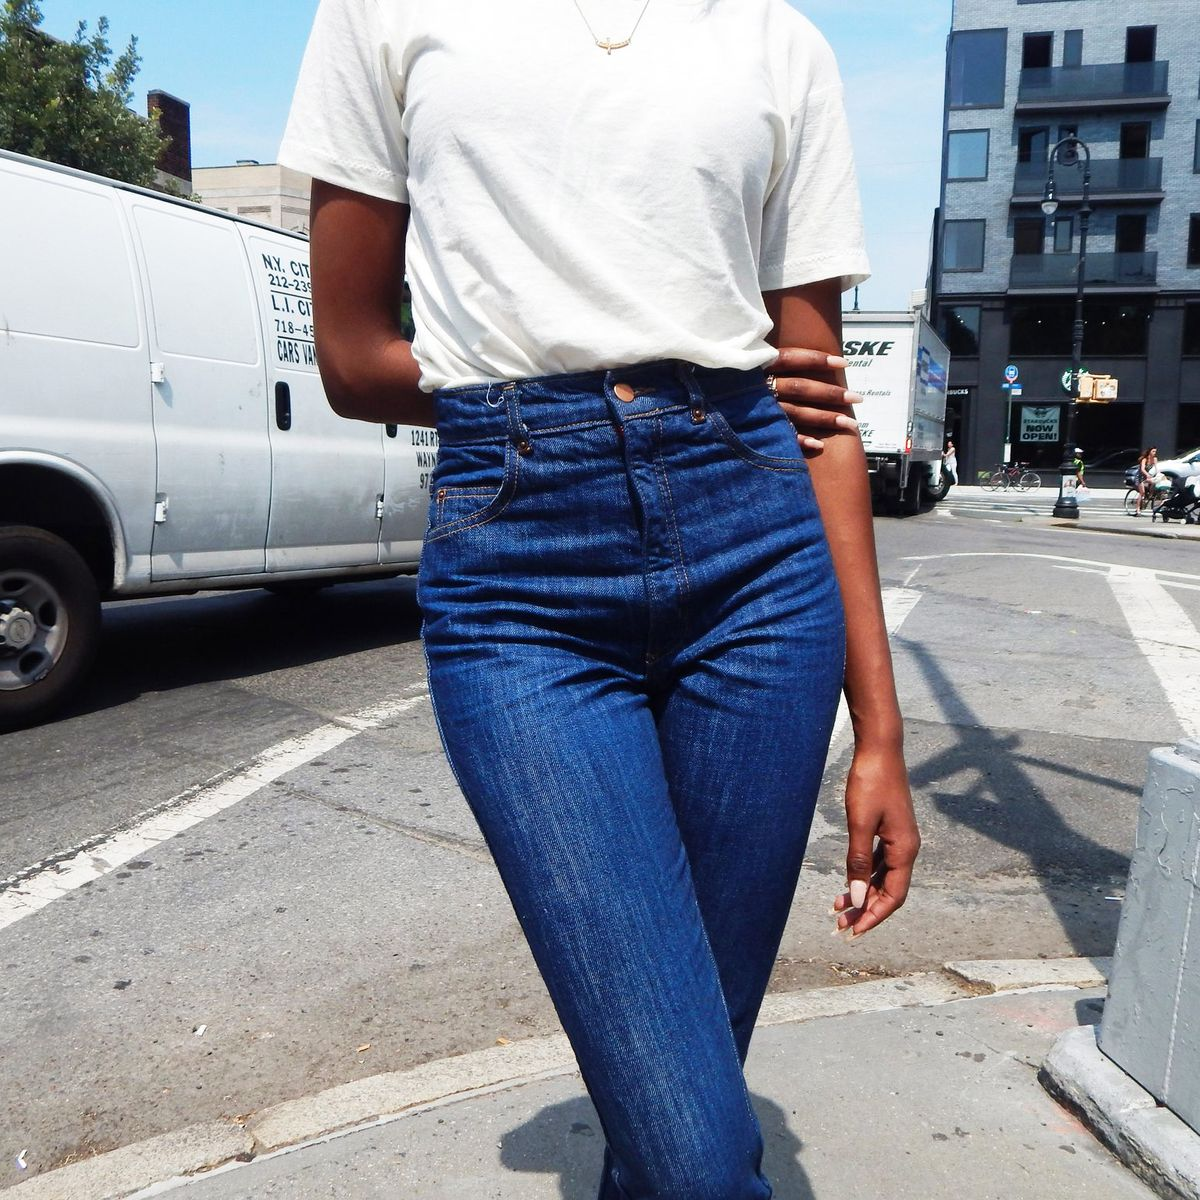 f1bd0fd276e The Best High-Waisted Jeans for Sitting, According to Stylish Women